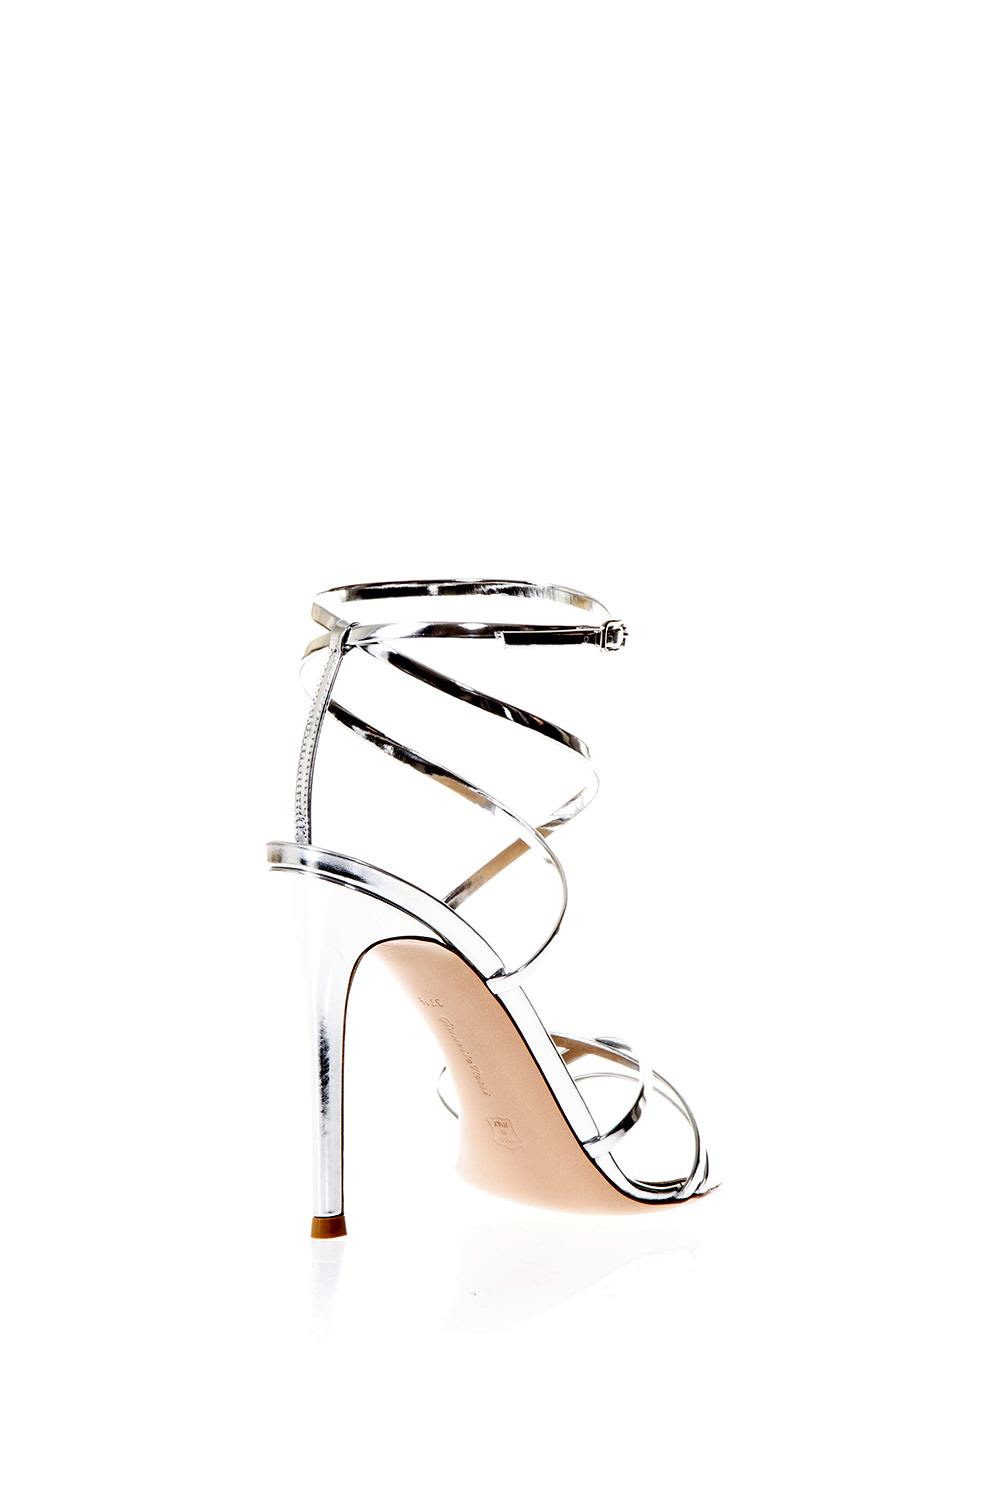 gianvito rossi gianvito rossi metarge silver sandals in leather 30 Inch Heels Lady Gaga gianvito rossi metarge silver sandals in leather silver